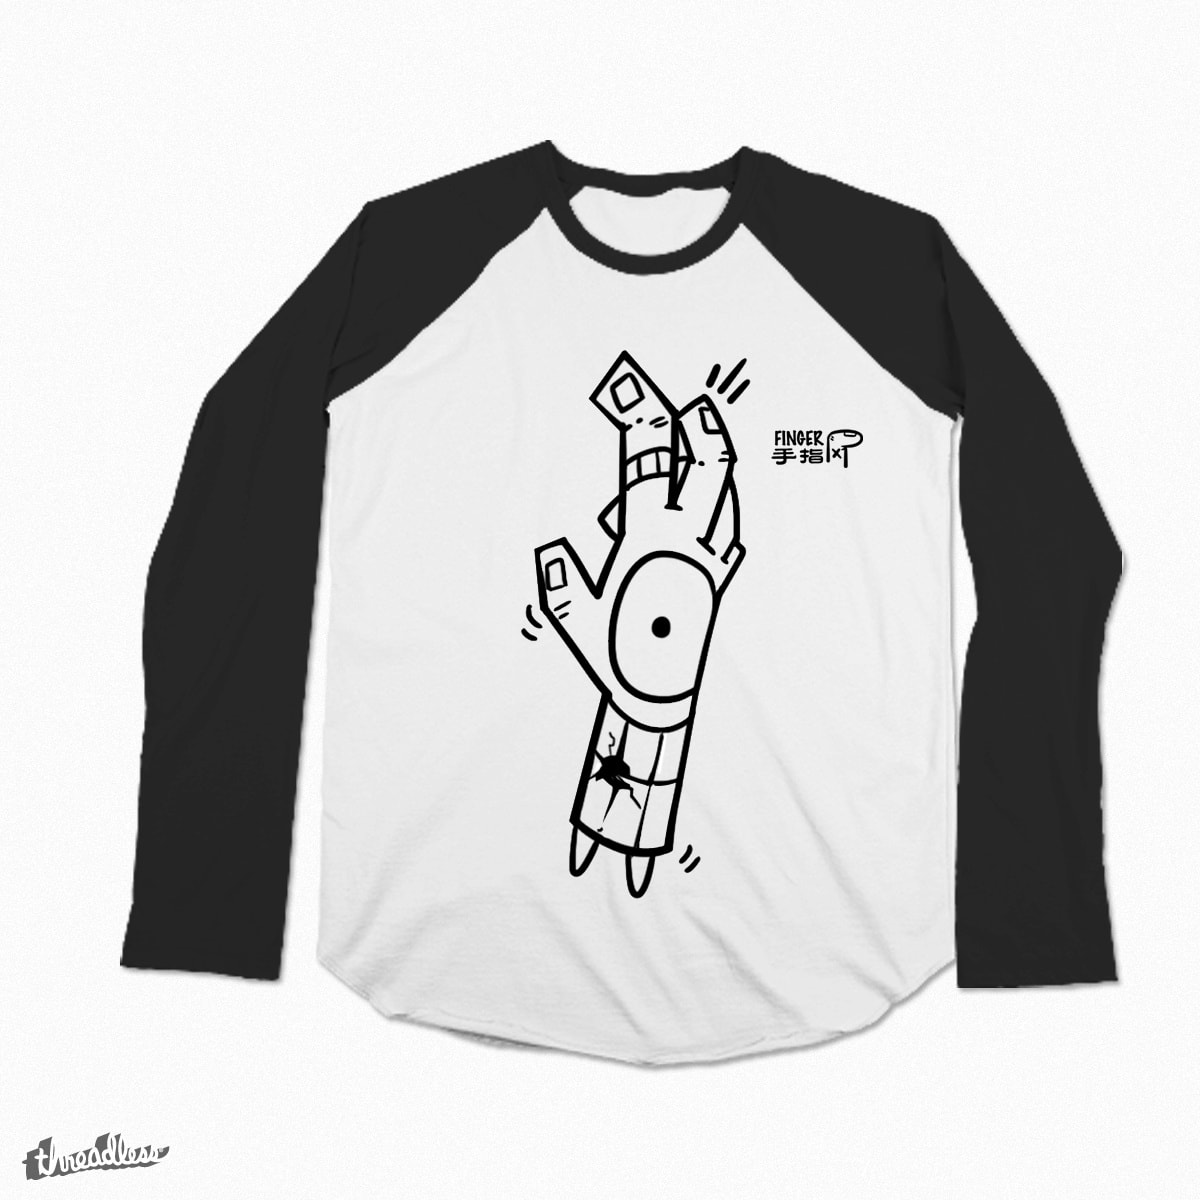 Communicate with your hands by JChao on Threadless